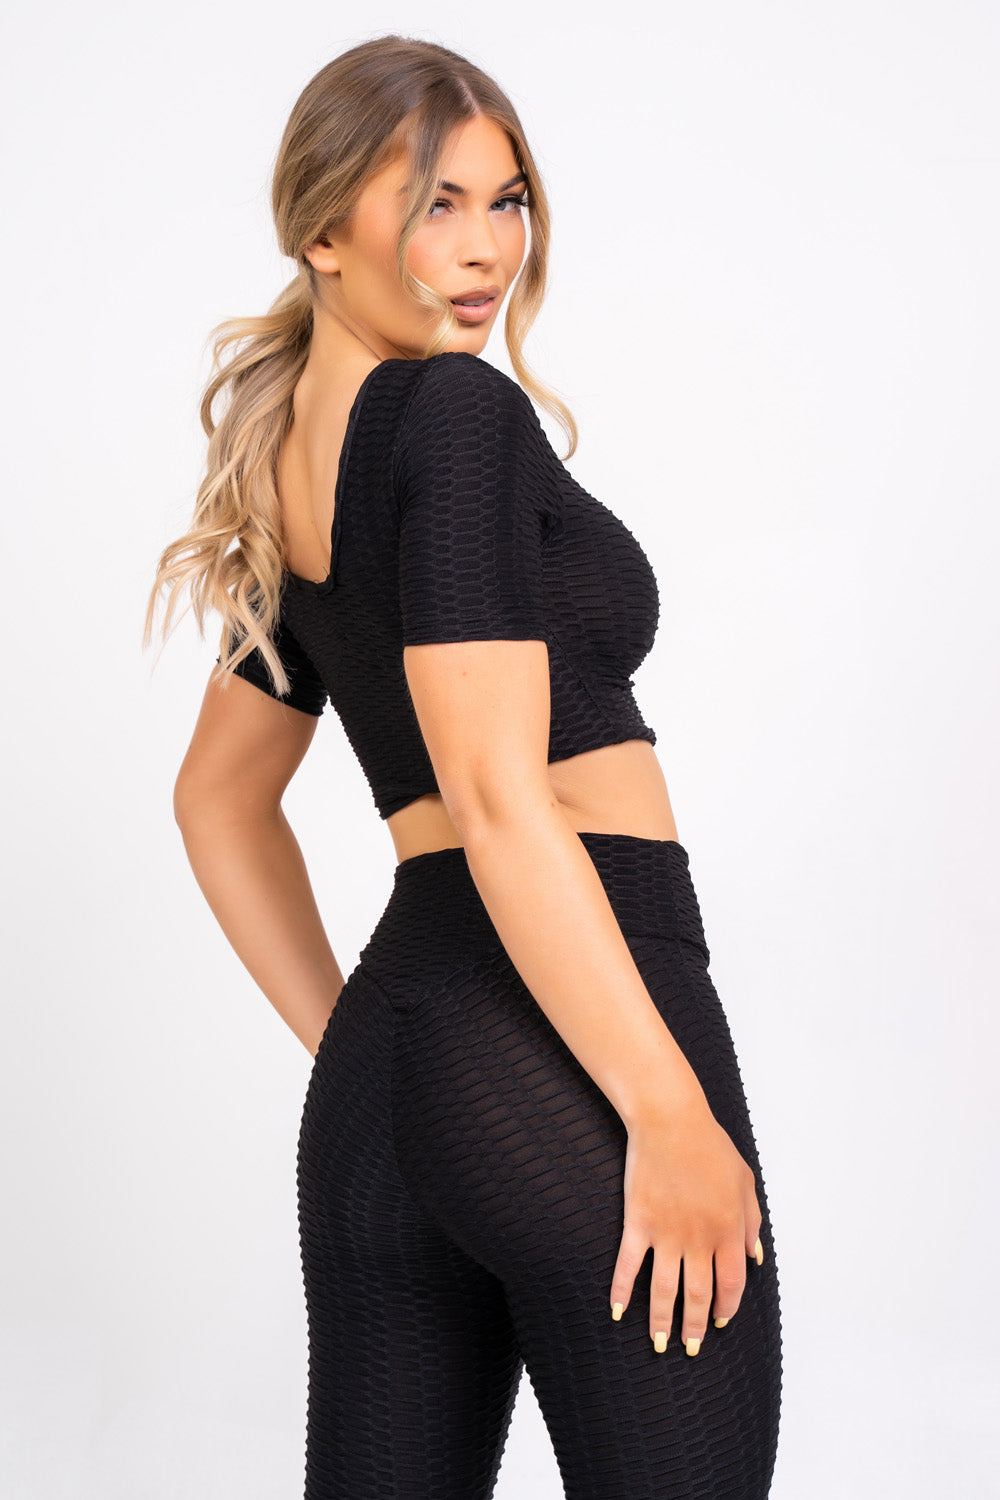 Dion Black Honeycomb Sports Cropped Top & leggings Co-ord Fitness Set